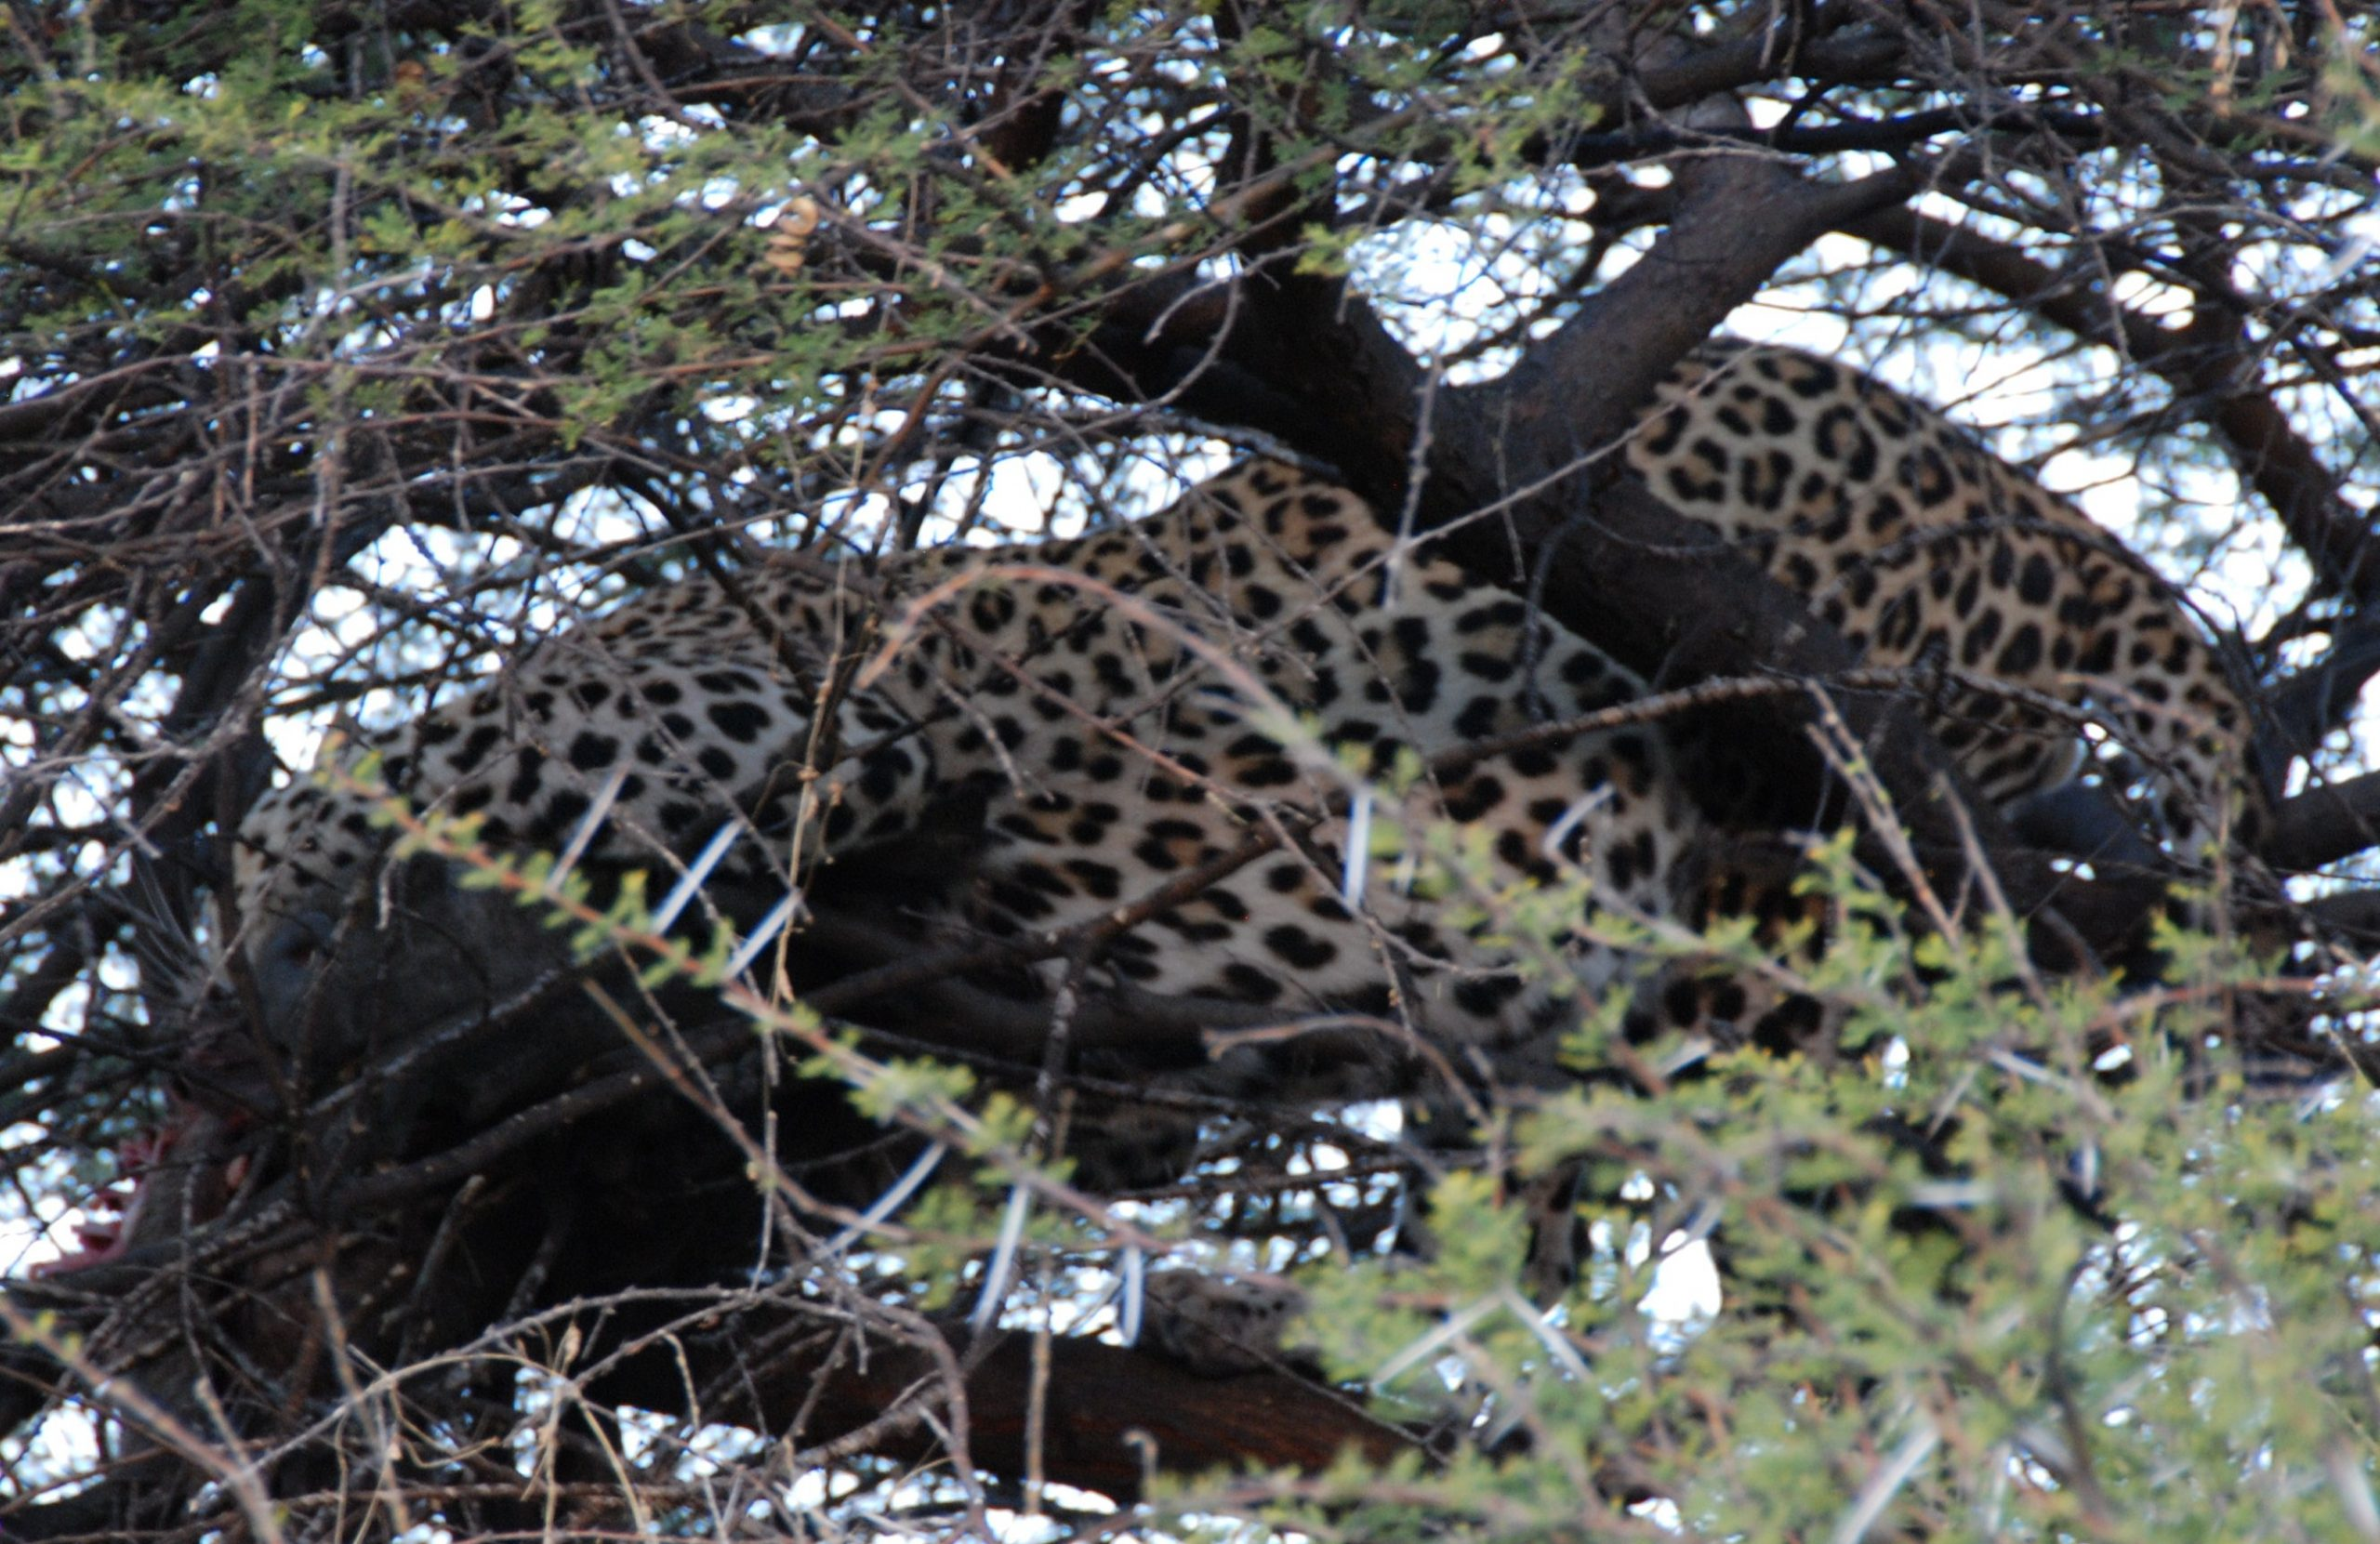 Leopard feeding on warthog - Santawani Concession, Botswana